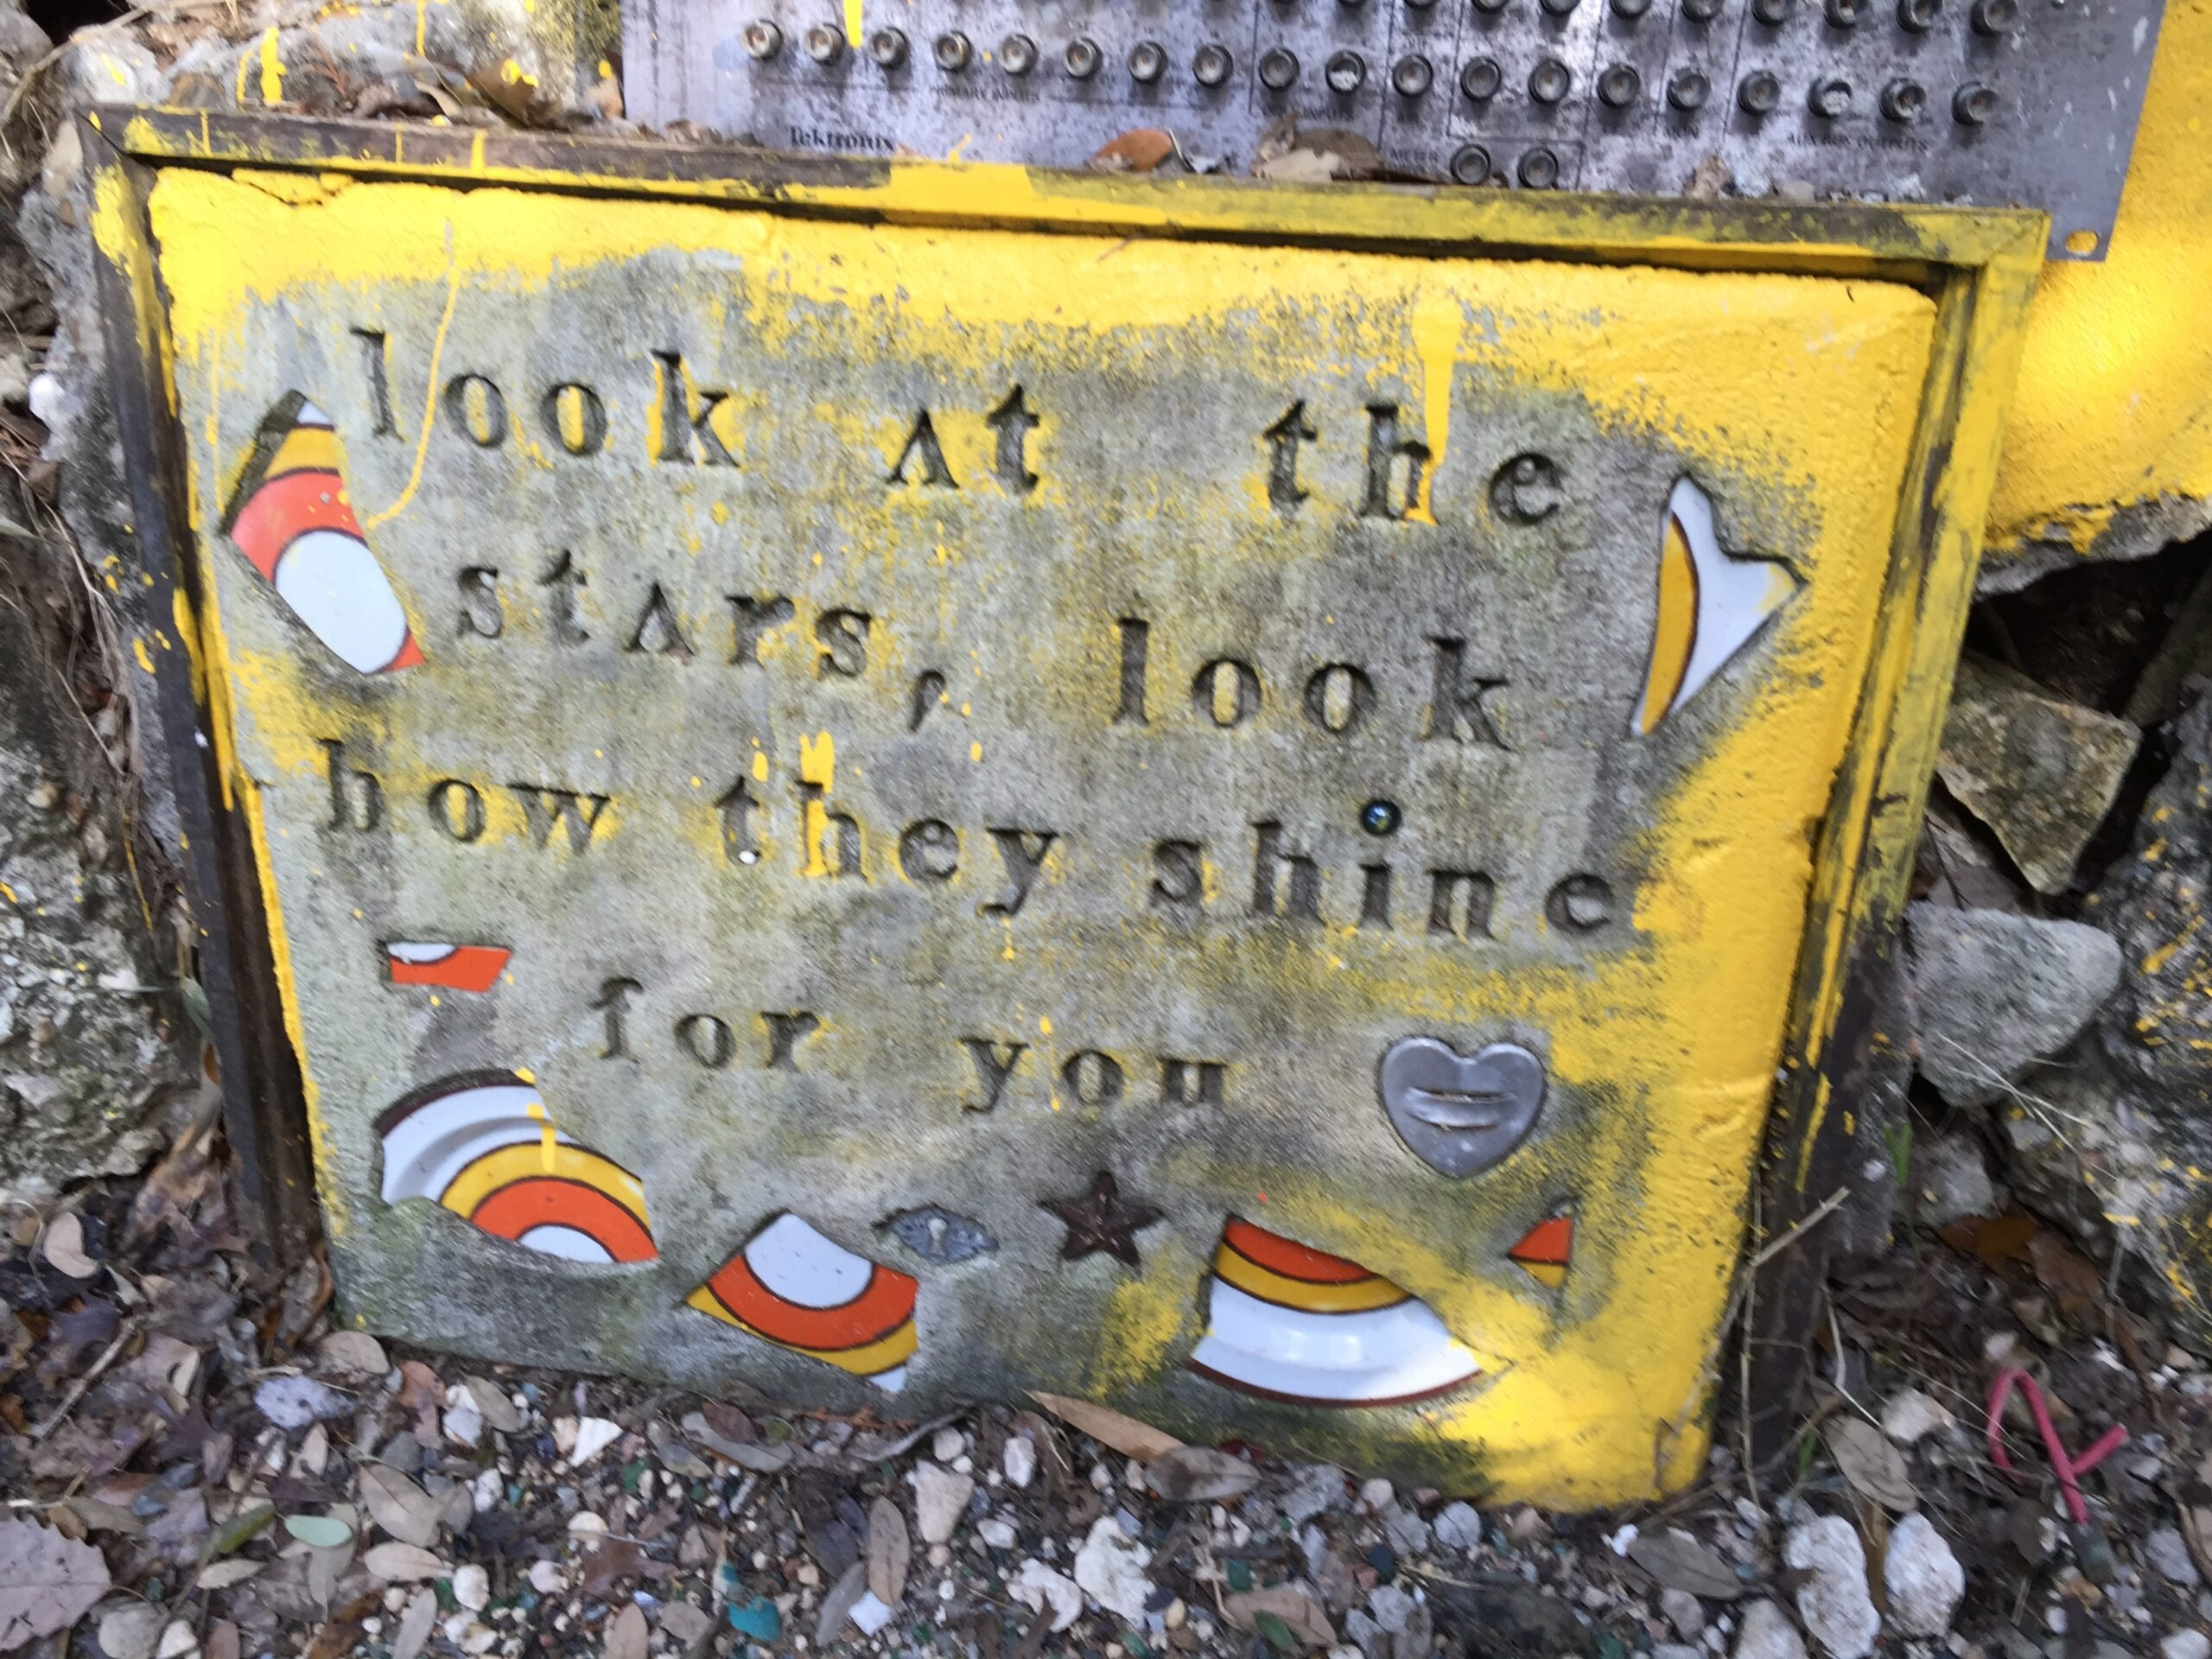 Cathedral of Junk - A lovely message